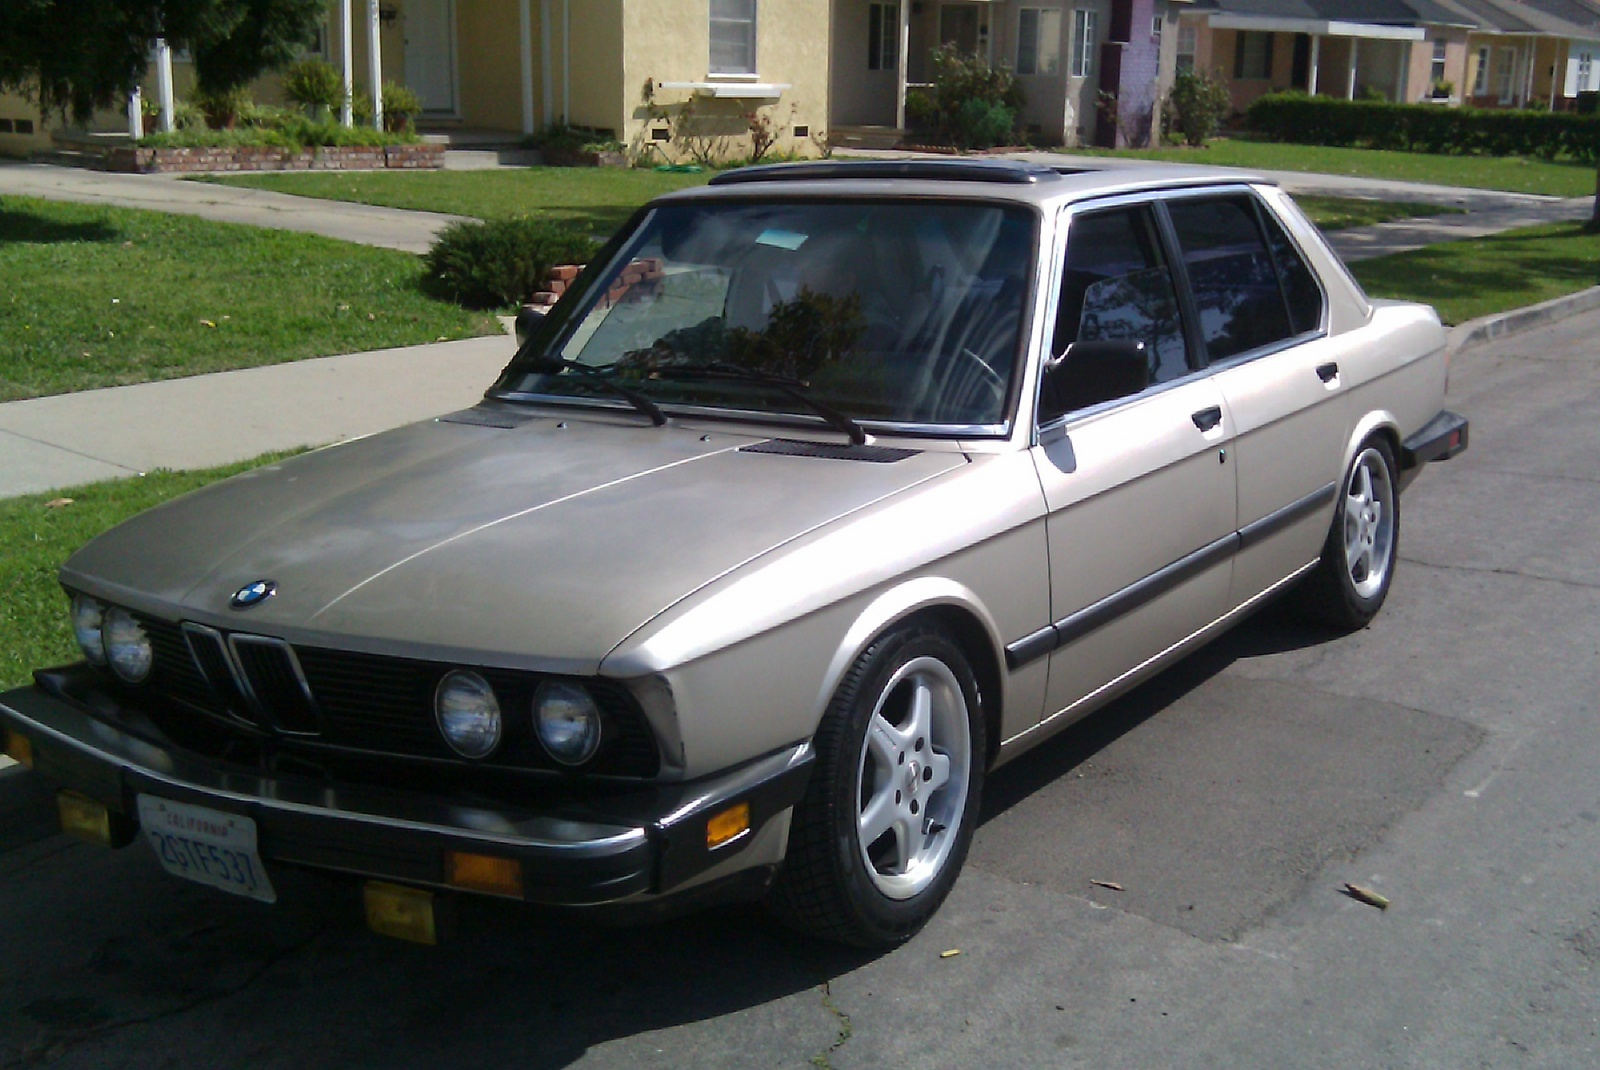 98 Bmw 528i For Sale 1985 BMW 5 Series - Other Pictures - CarGurus